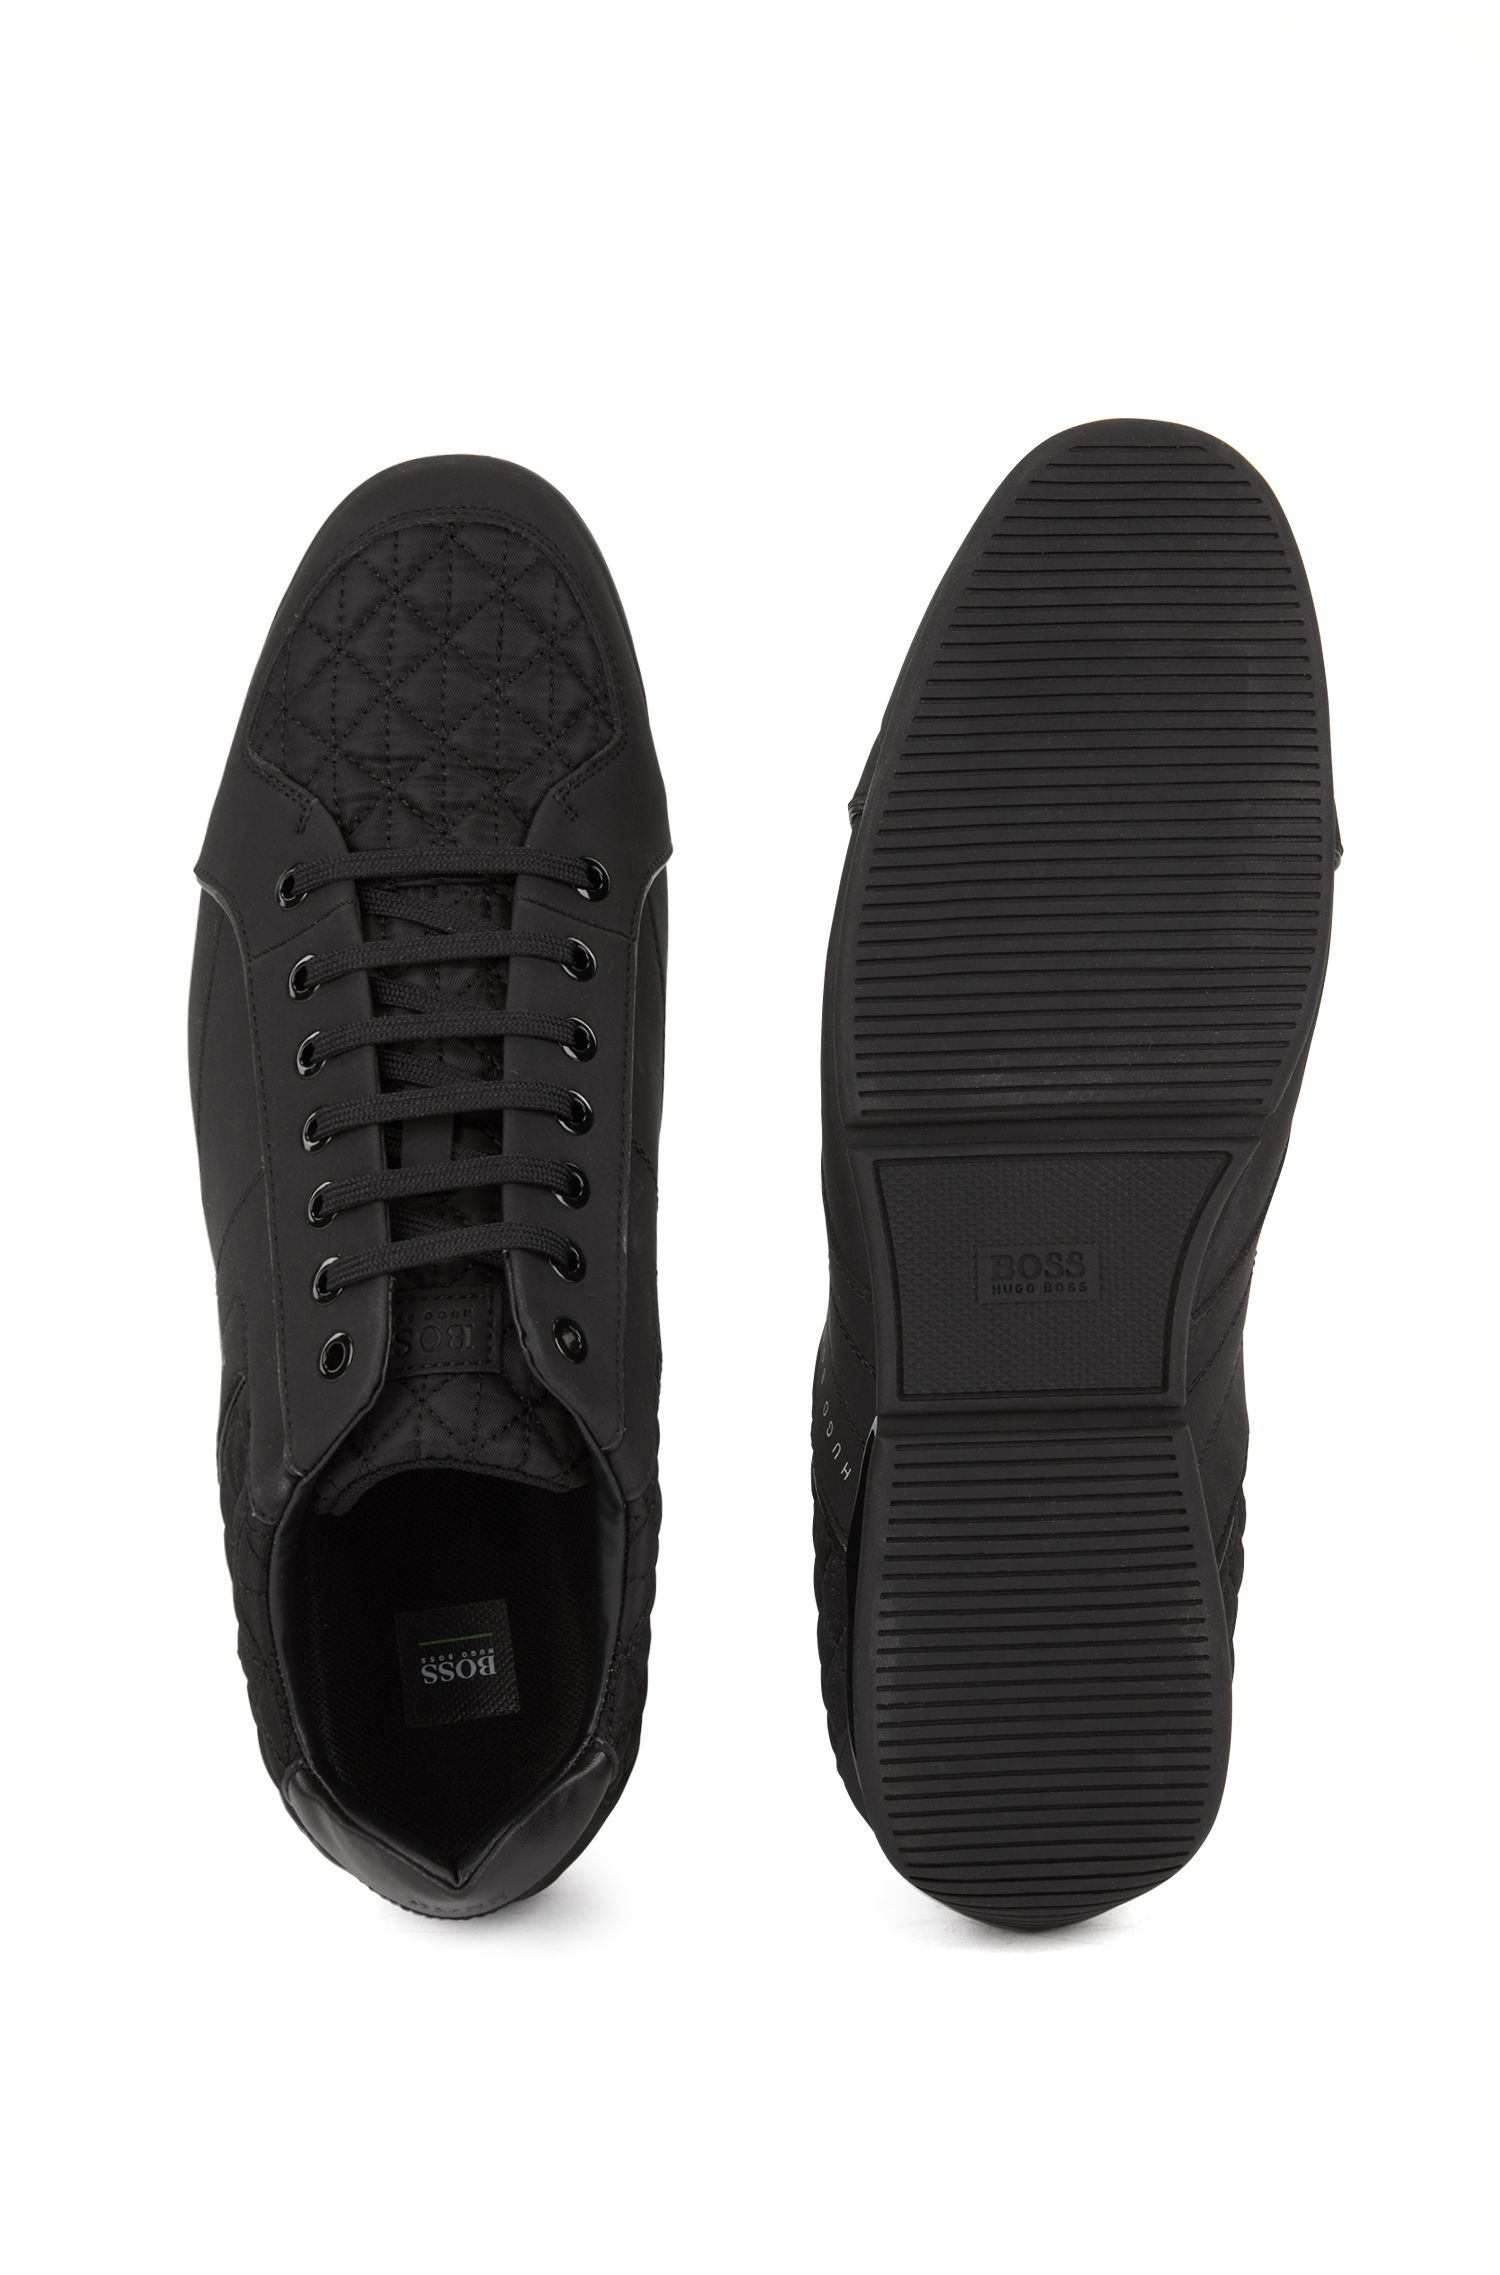 Sneakers low-top con sezioni in pelle e trapuntate